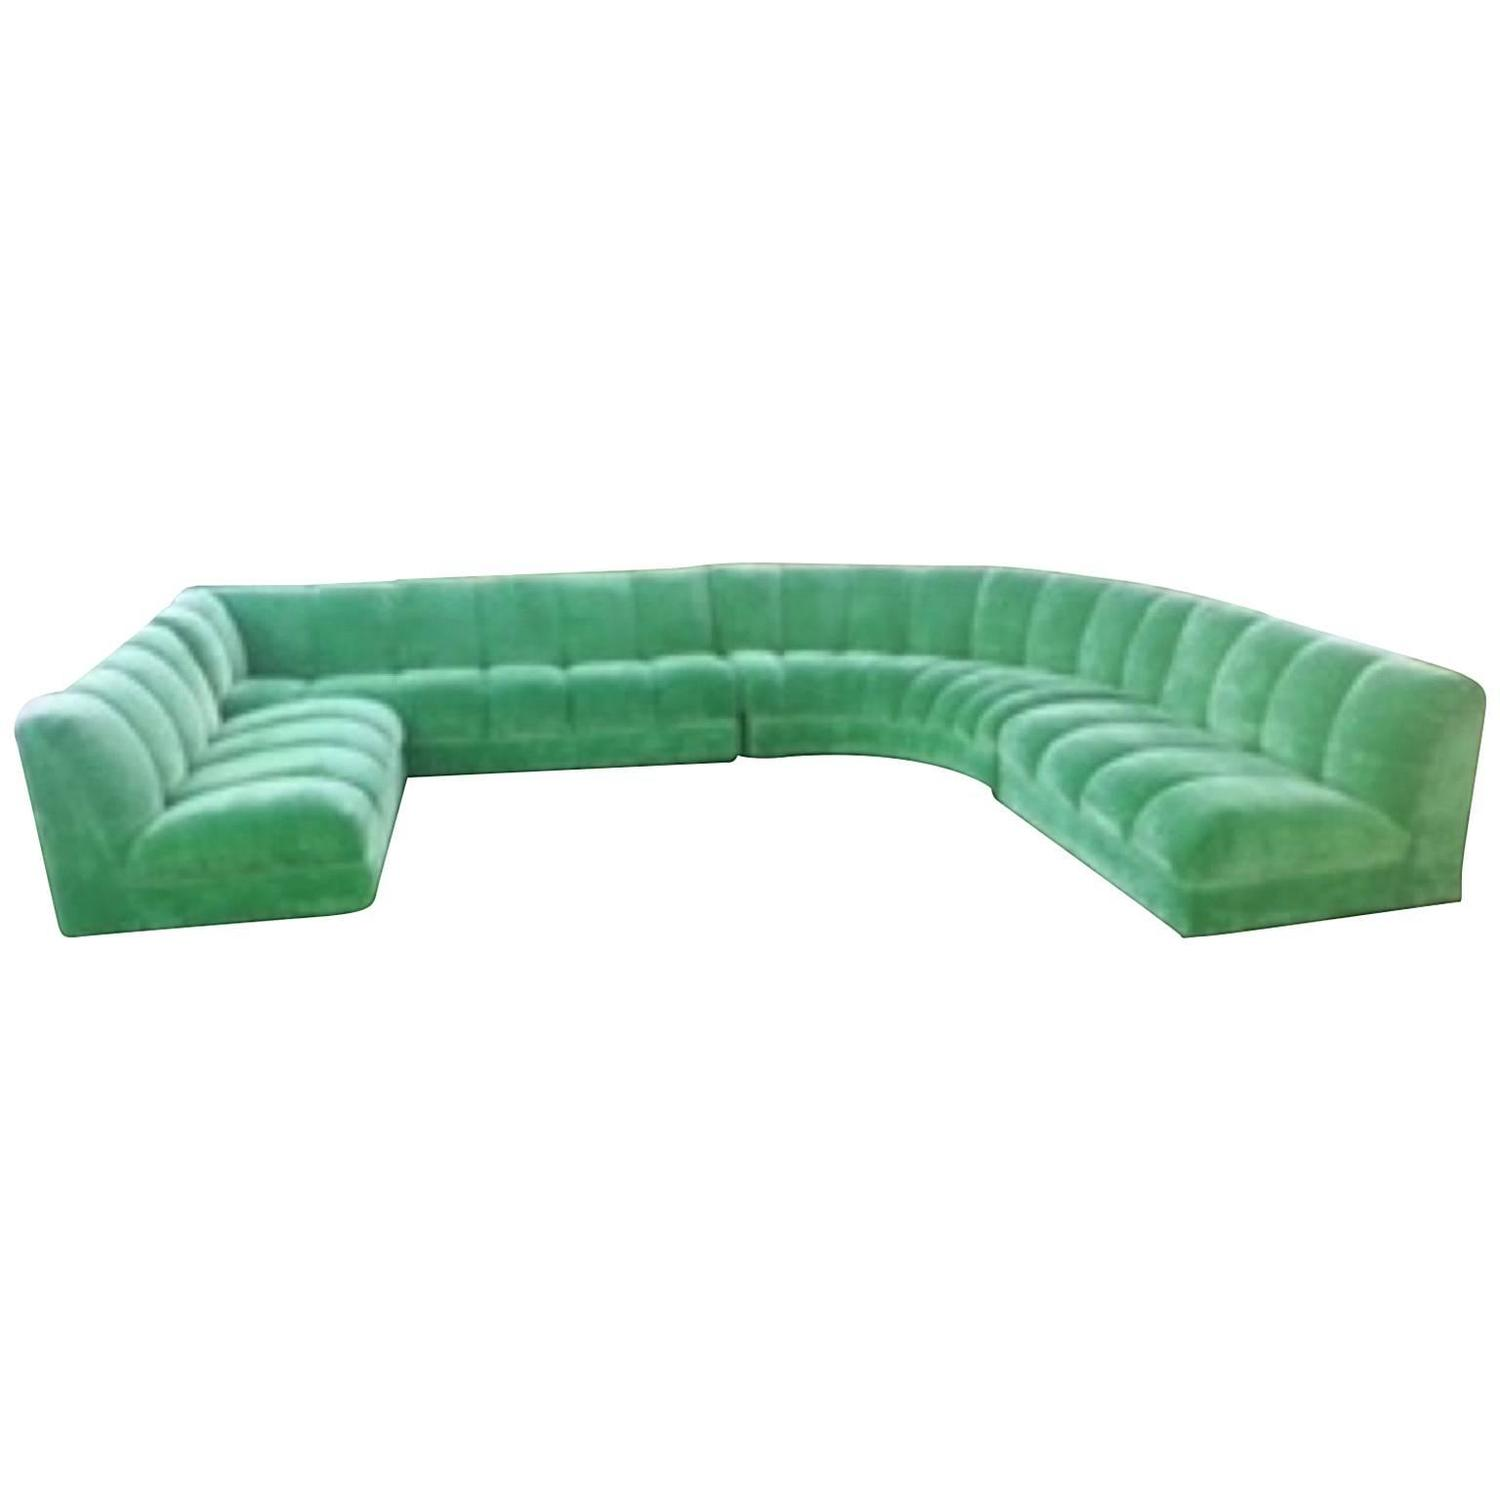 Four Piece Sectional Couch In The Style Of Milo Baughman